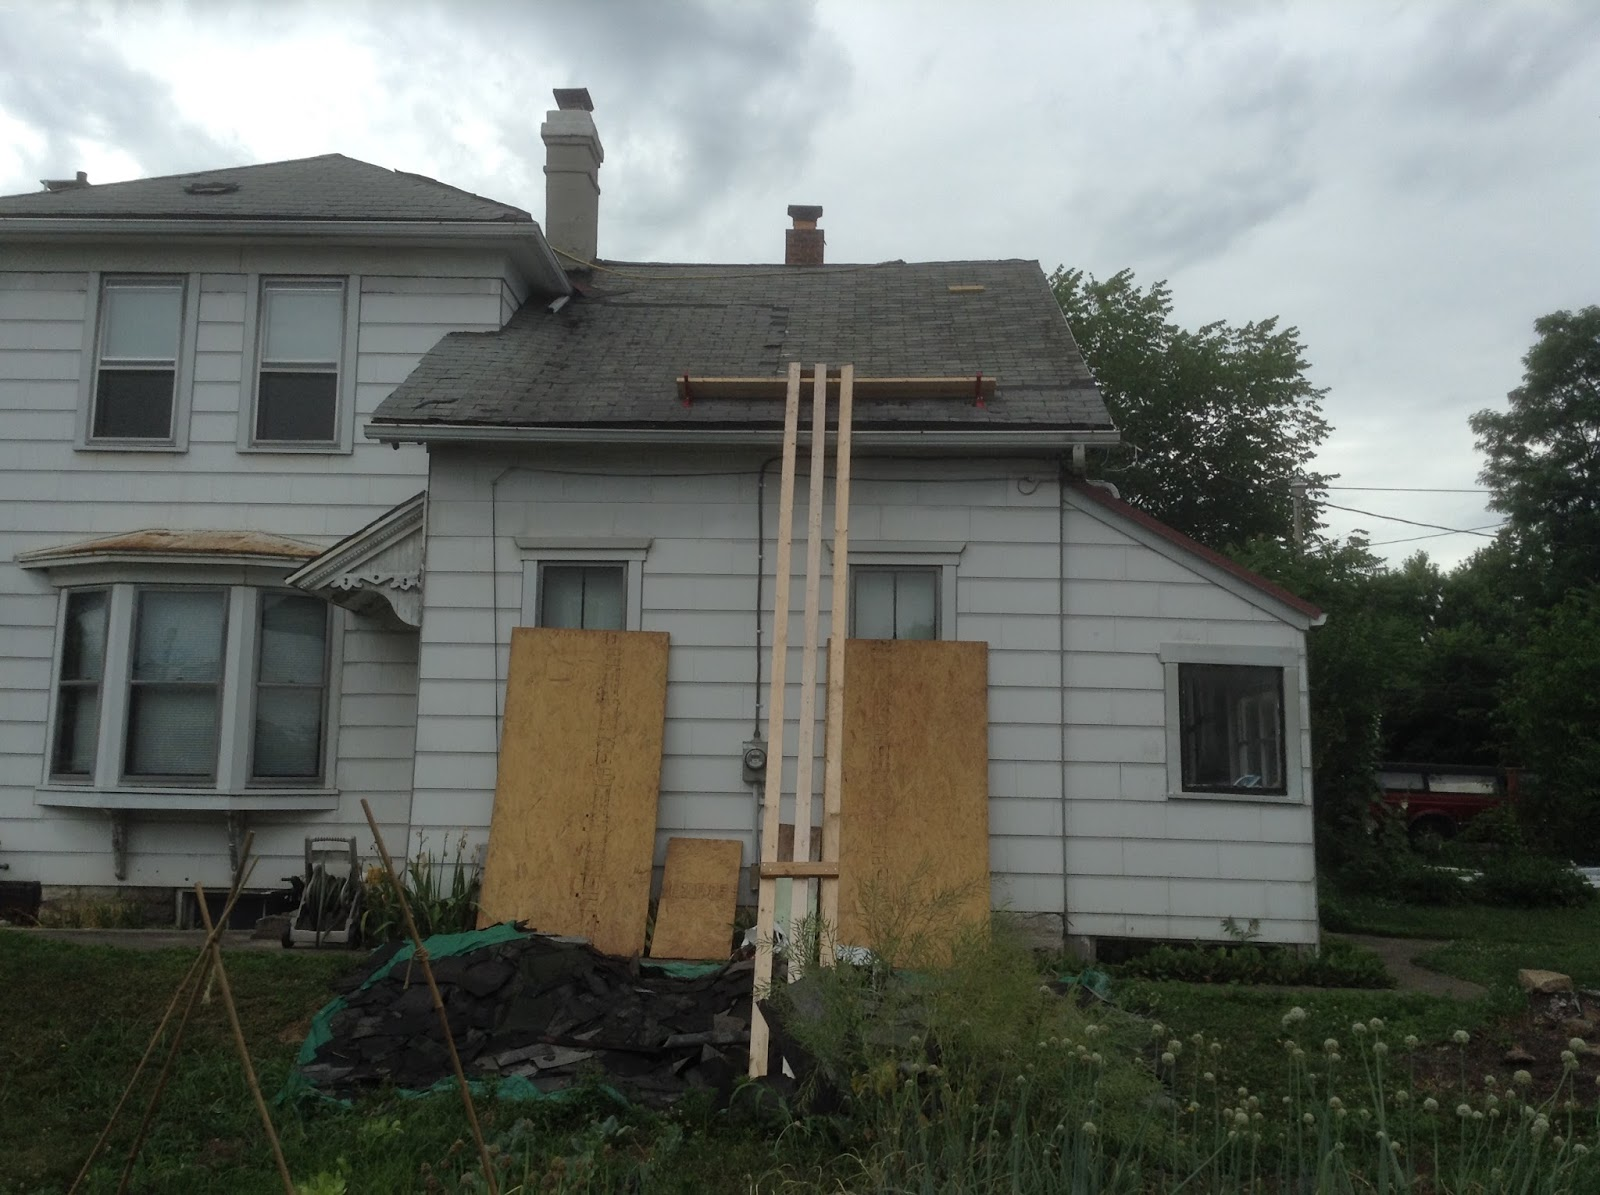 This Old Crack House